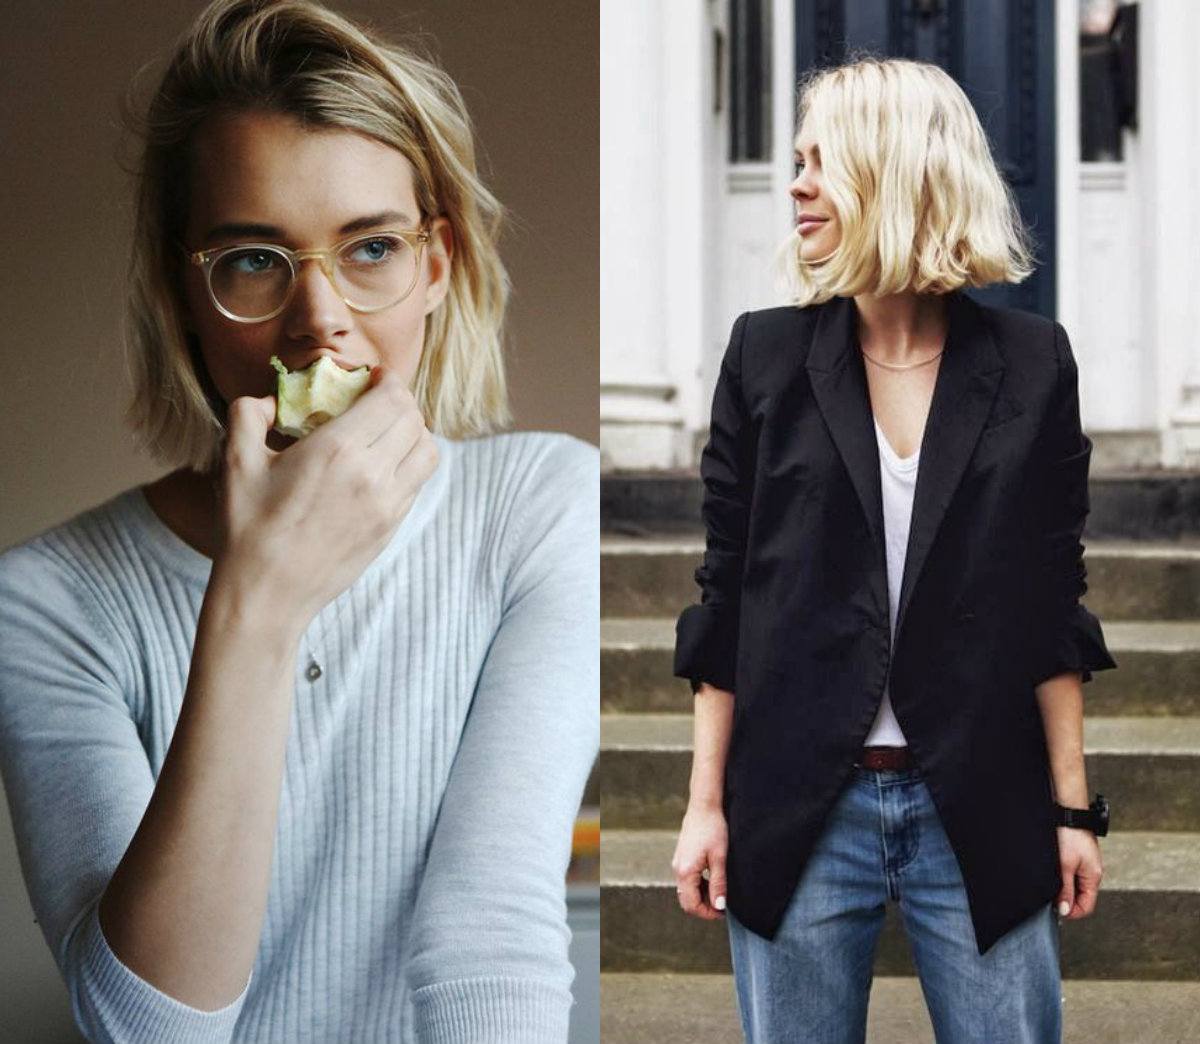 Super Messy Bob Hairstyles 2017 To Drive Crazy Hairdrome Com Short Hairstyles For Black Women Fulllsitofus